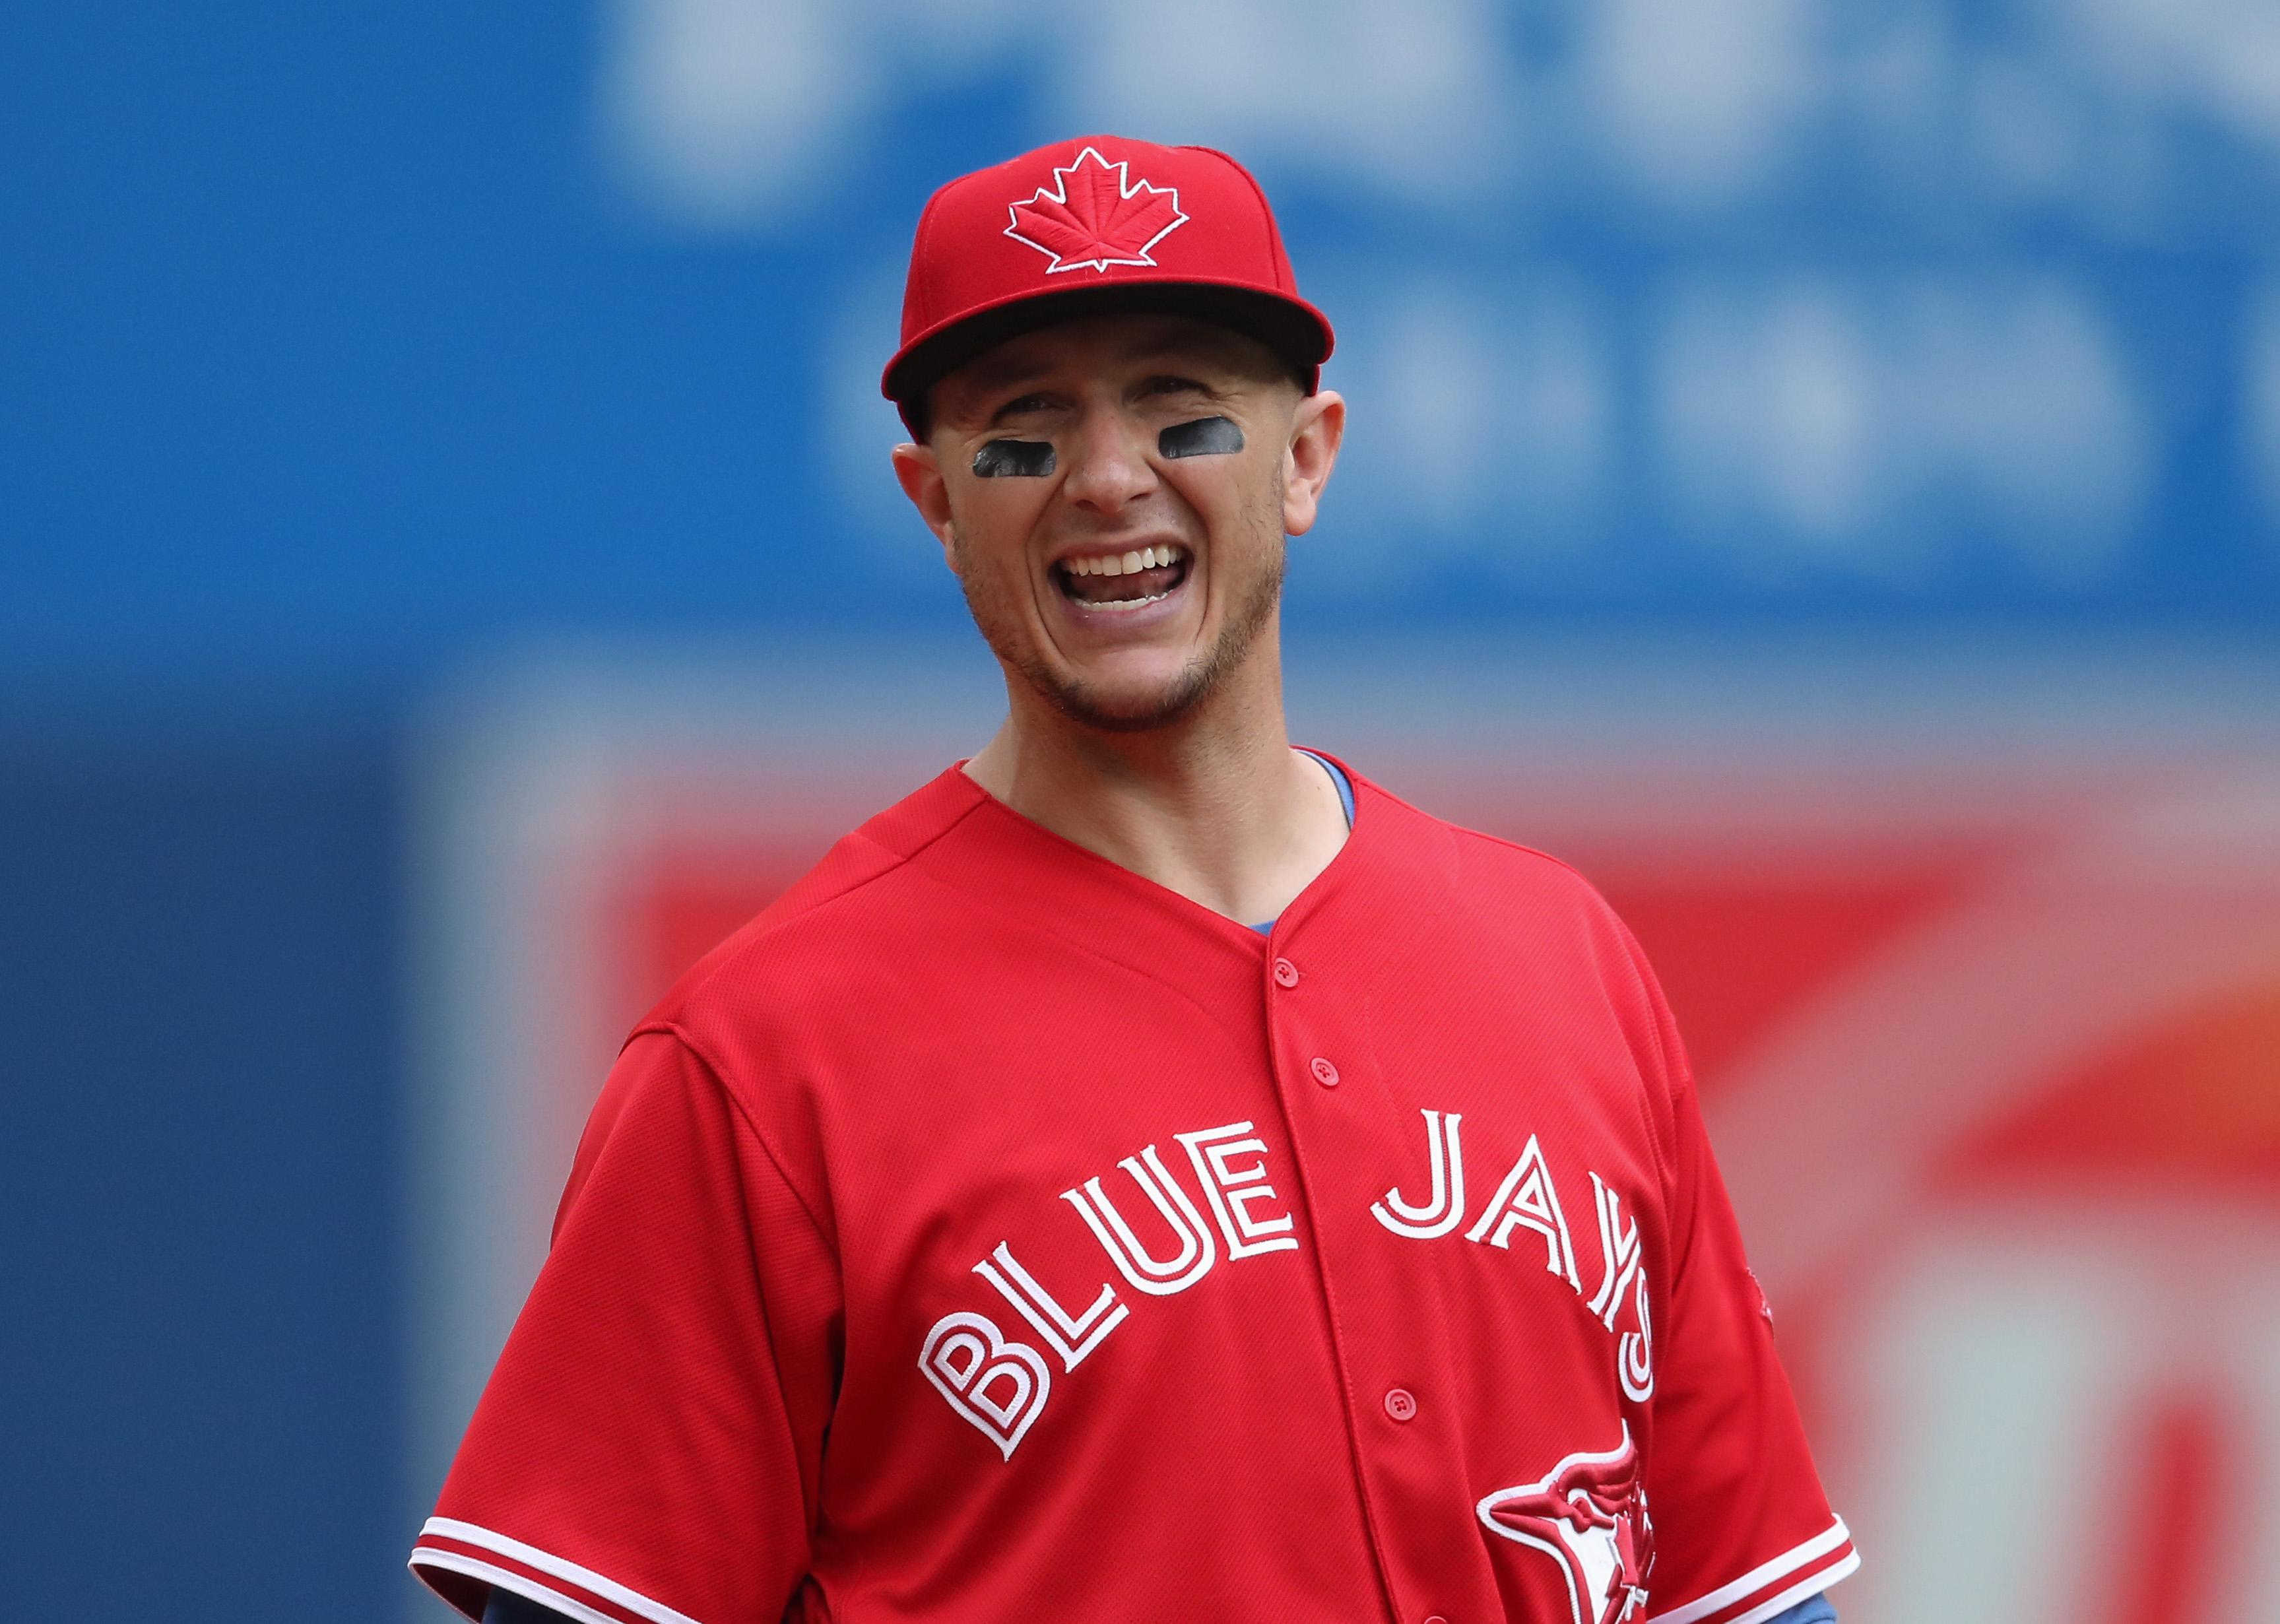 Ss Troy Tulowitzki Agrees To Deal With New York Yankees